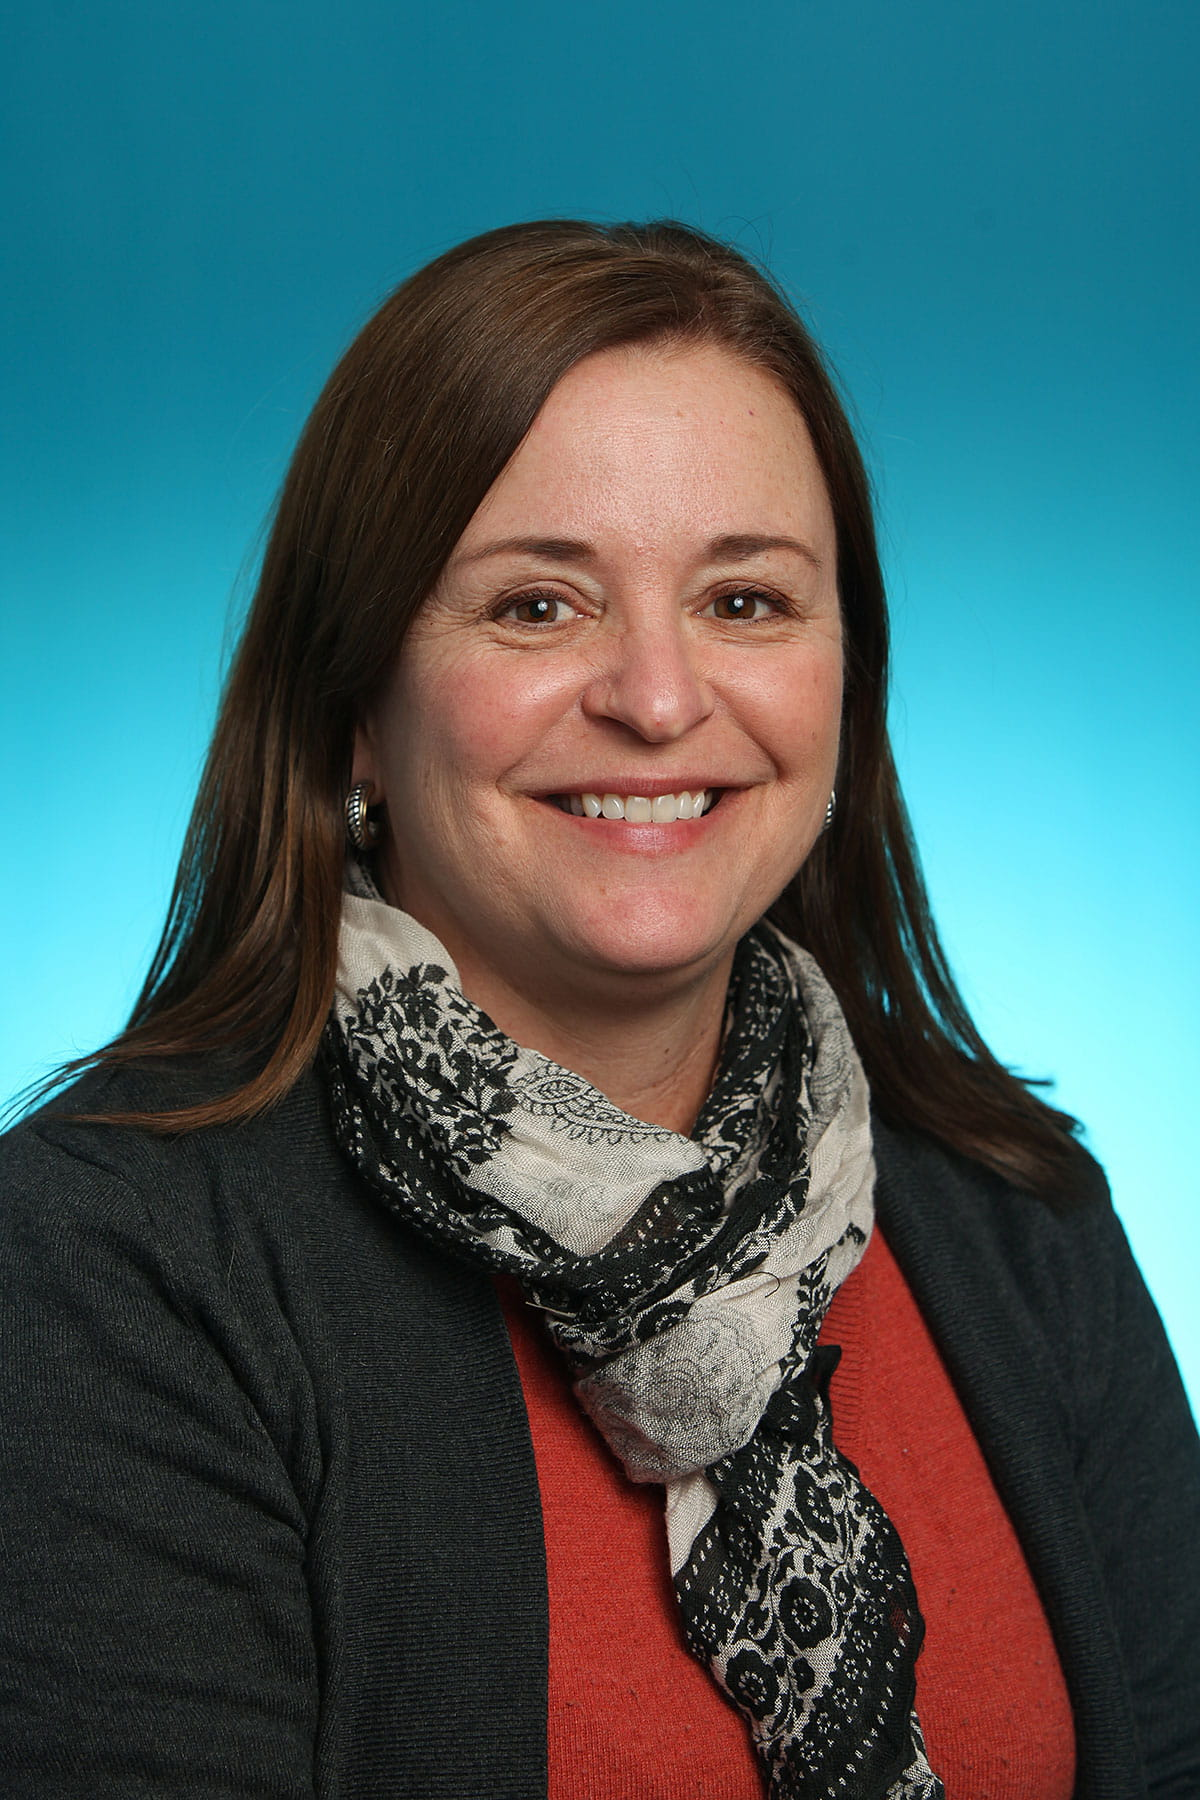 Nancy Roberto, MSN, APRN, CNP